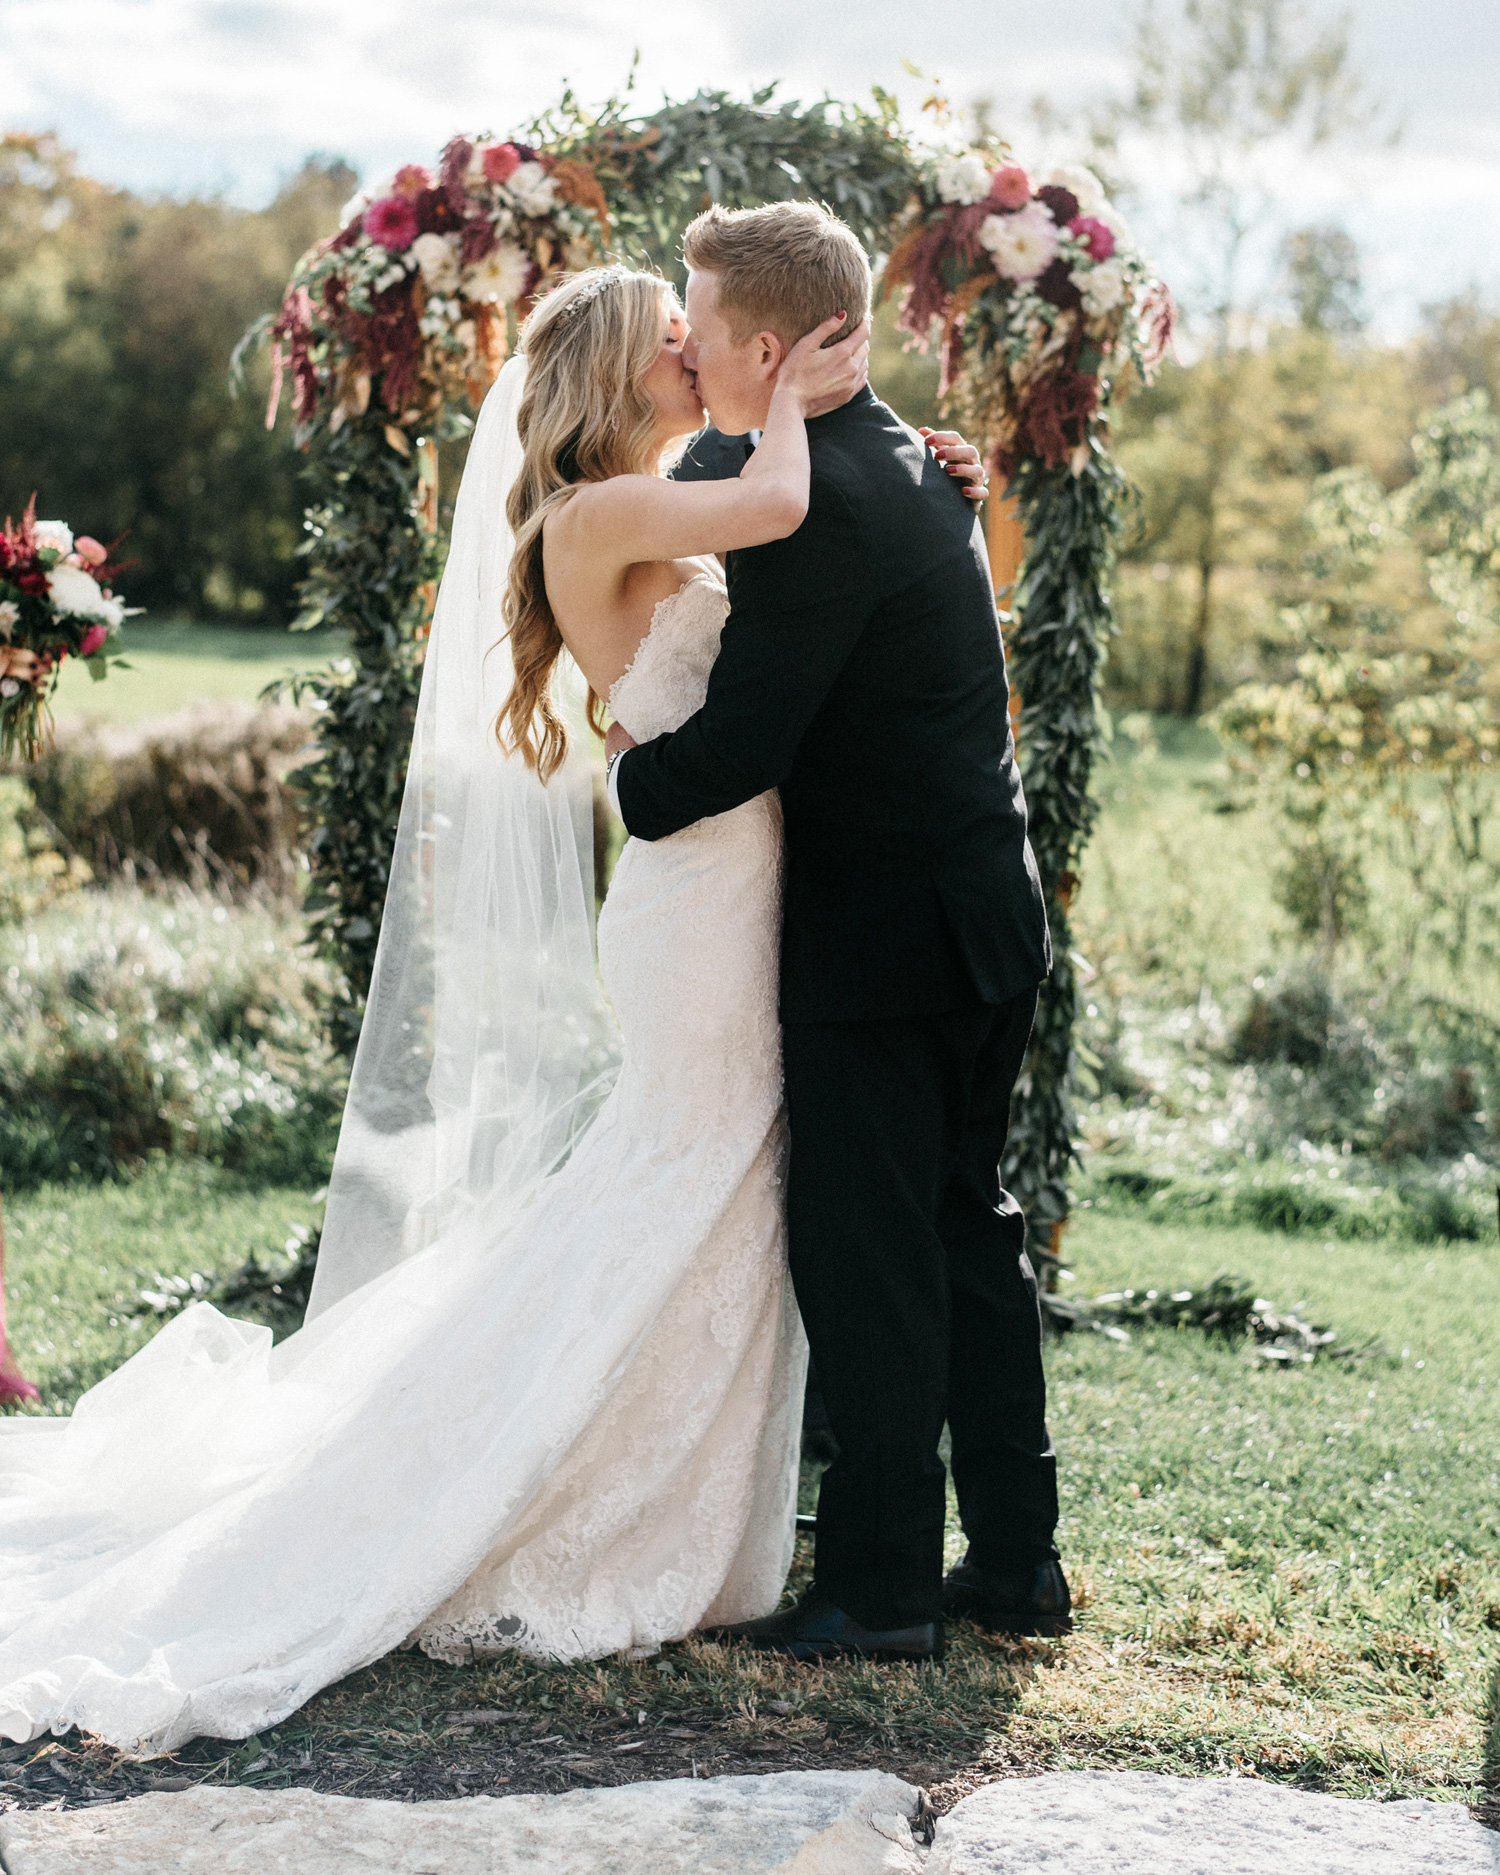 Outdoor ceremony kiss at Birch Hill Barn by Geneoh Photography